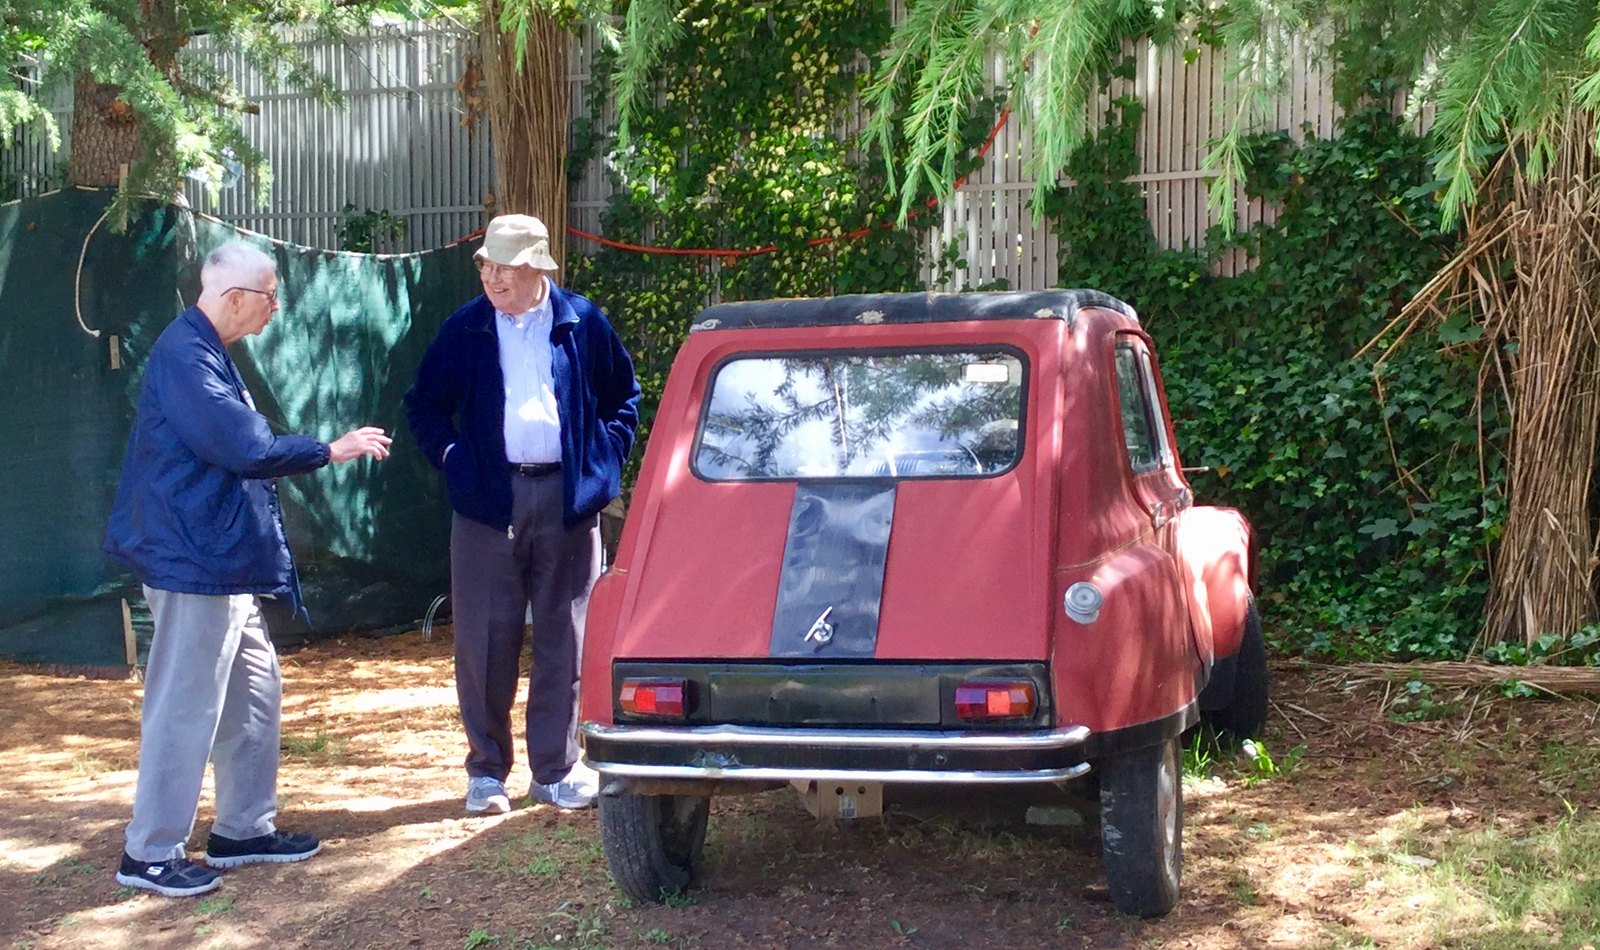 201705 - Balkans - Bob and Don and an Old Car - 61 of 95 - Nacionalen Park Galicica - Ohrid, Ohrid, May 28, 2017